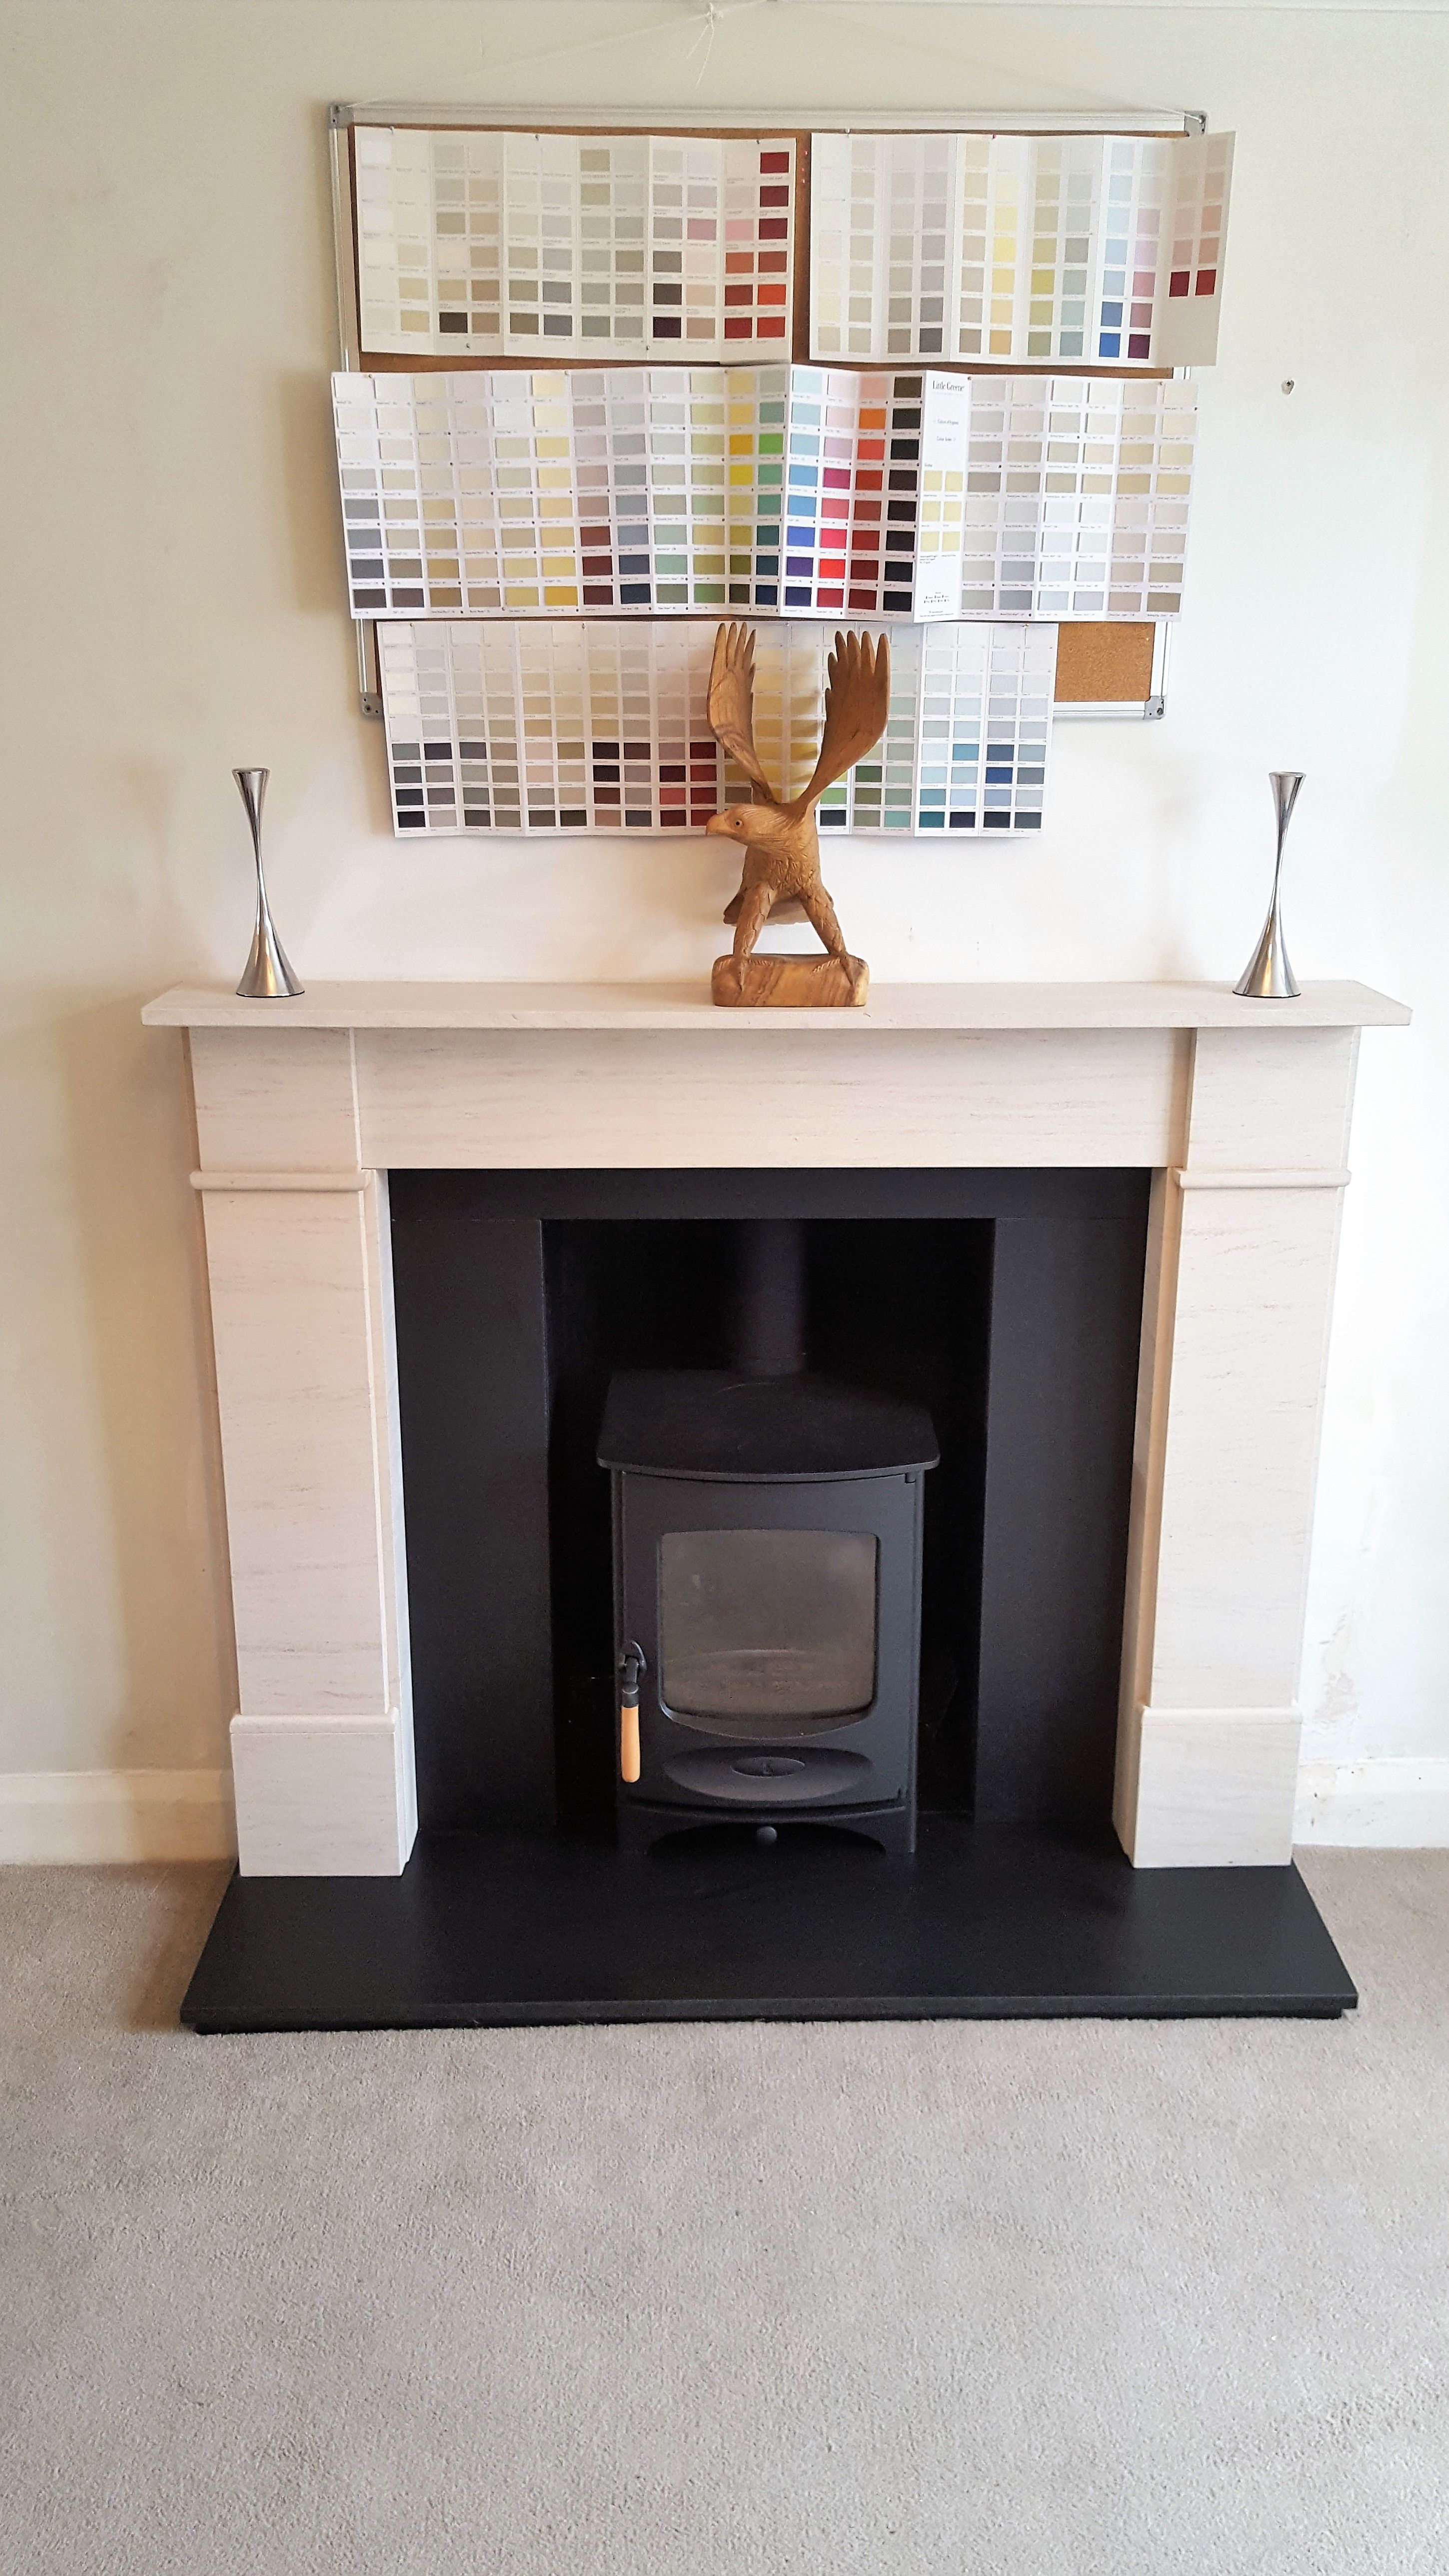 Charnwood C4 Woodburner In Black With Flat Front Victorian And Honed Black Granite Hearths S Fireplace Design Living Room Inspiration Granite Hearth